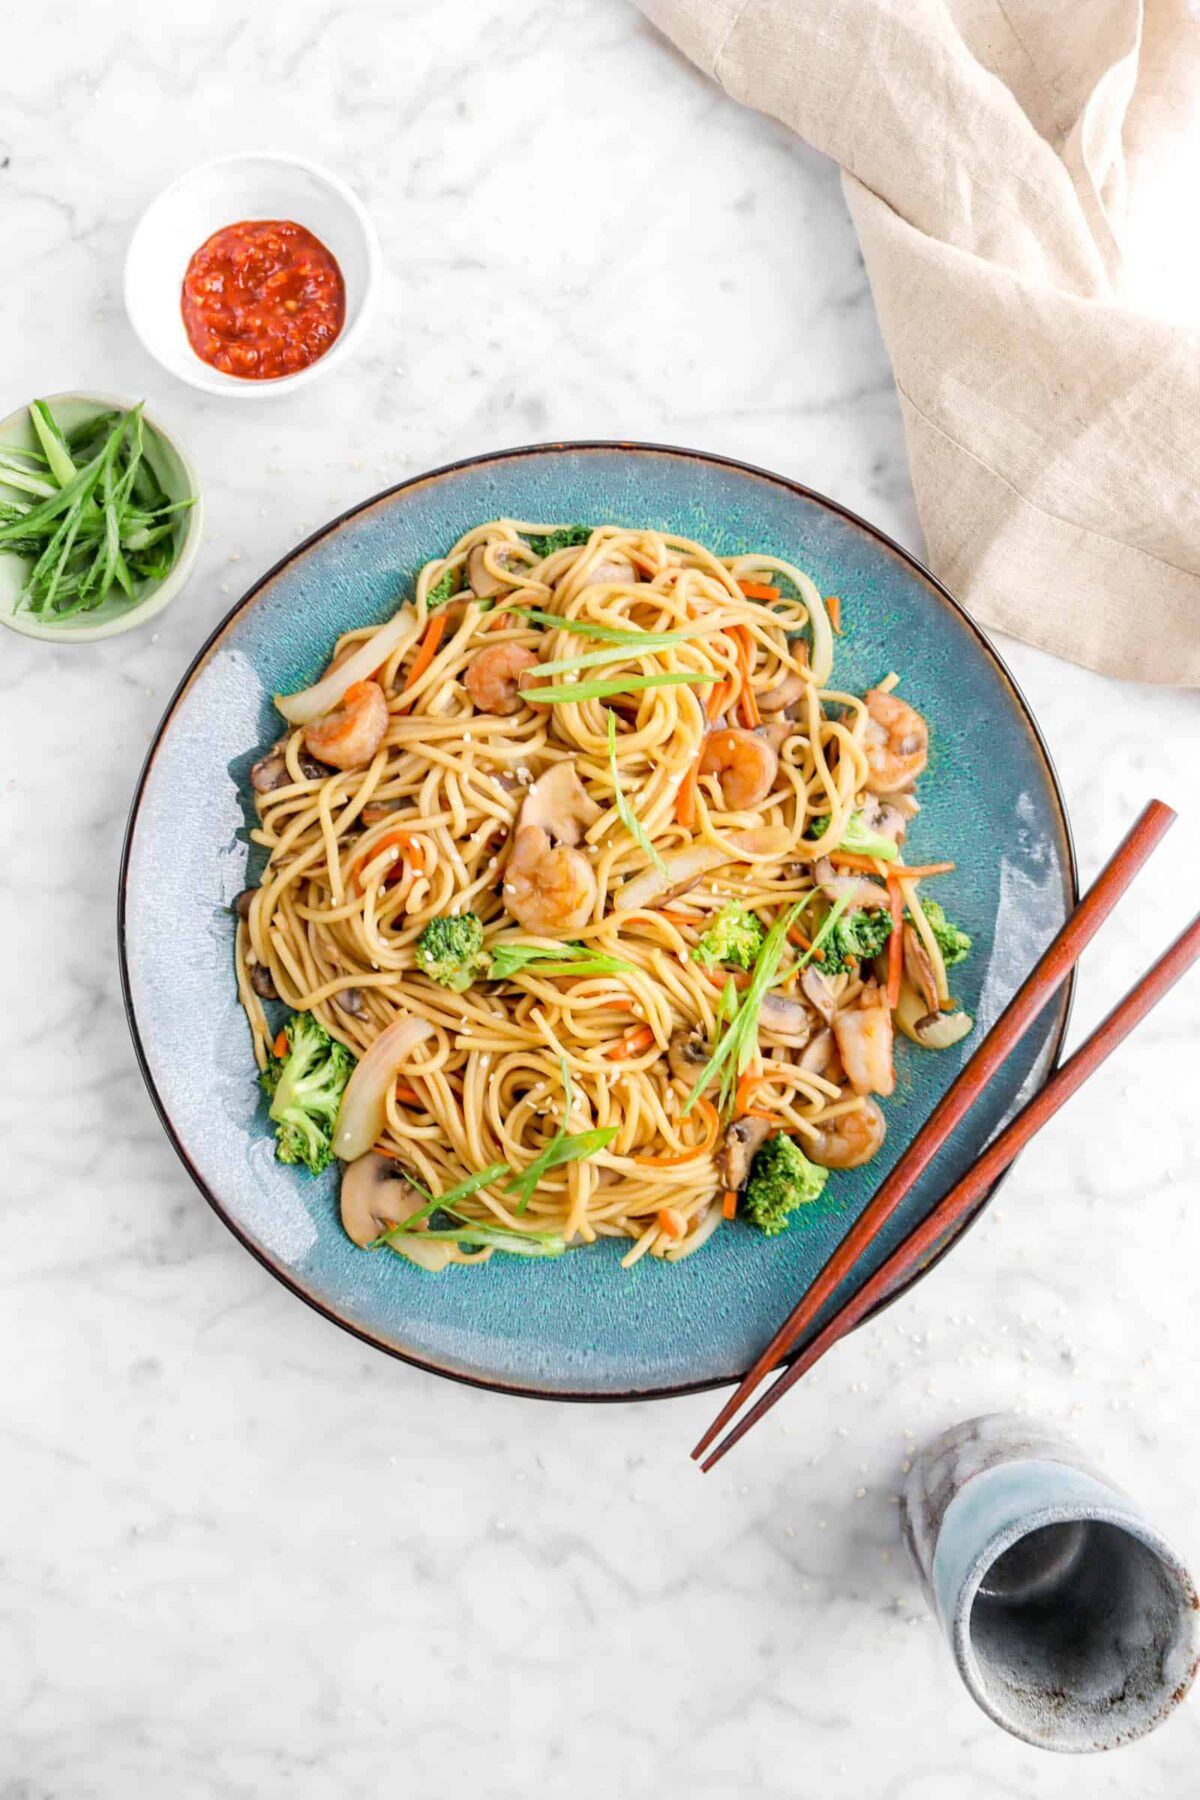 lo mein in blue bowl with chop sticks, toppings, and tan napkin